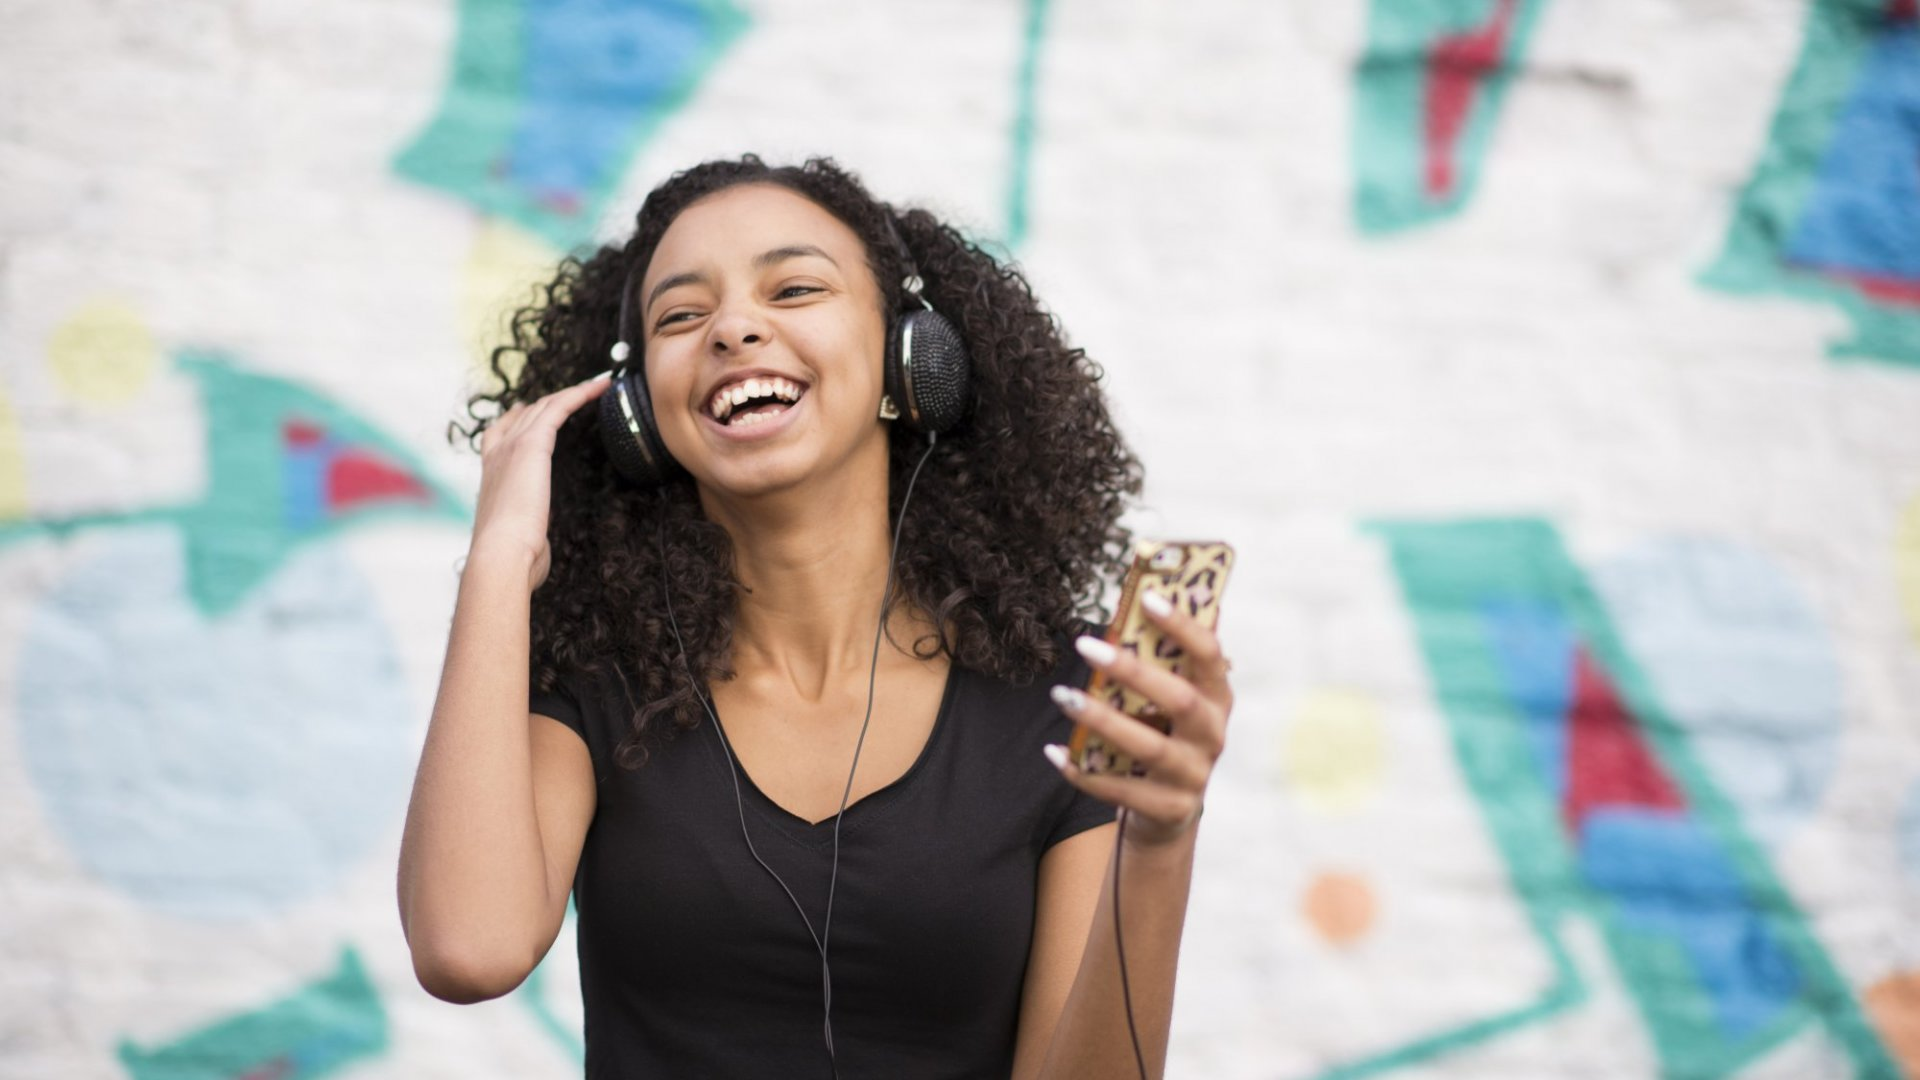 Your Favorite Music Has 1 Major Impact on Your Brain, Says Science